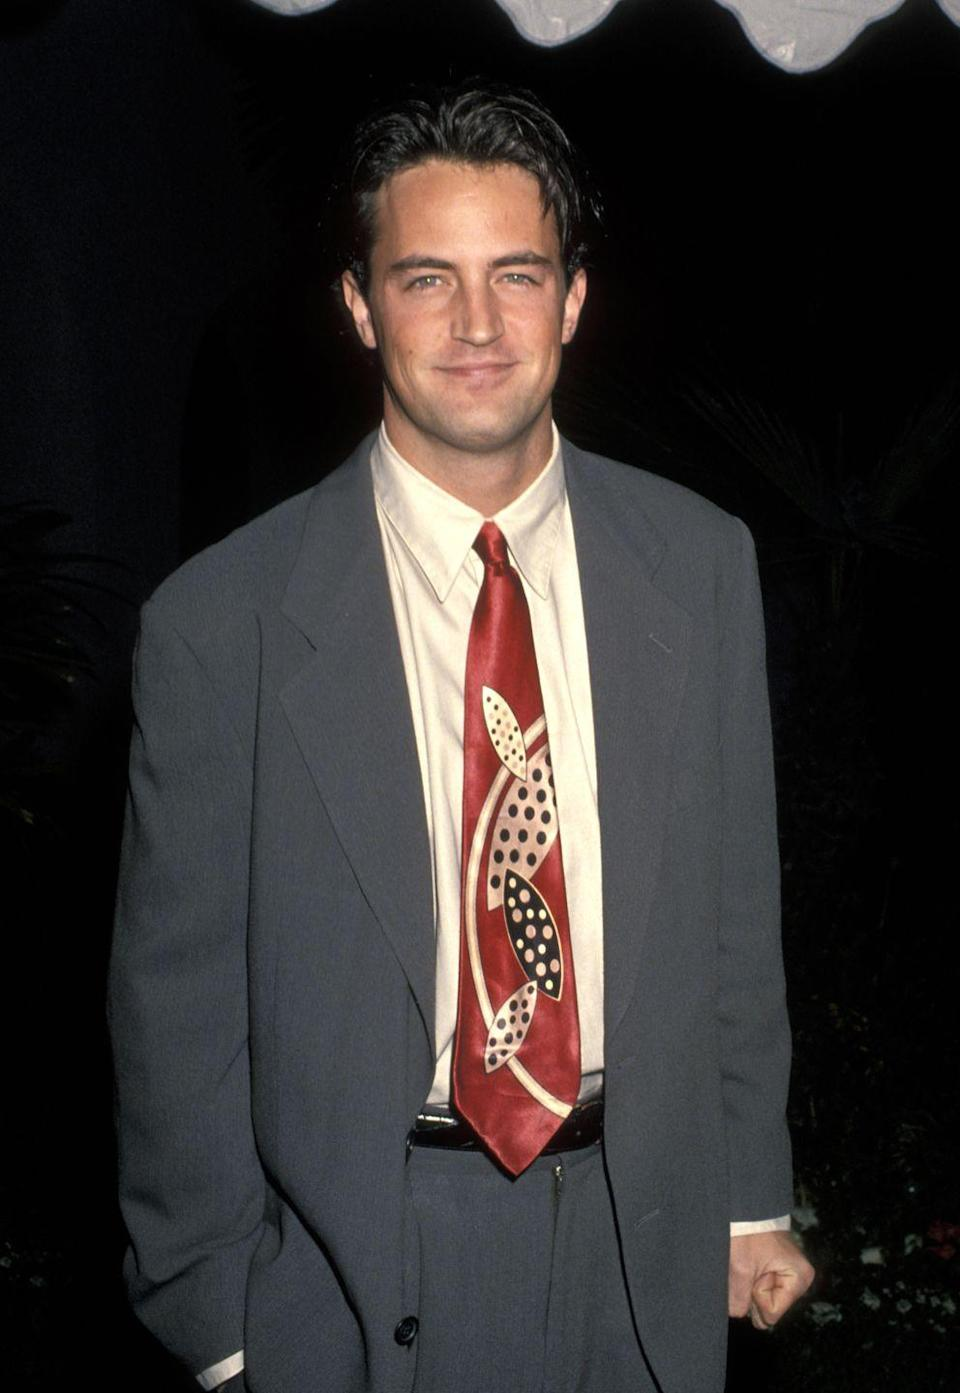 <p>Even though Matthew began his acting career almost a decade before landing the role of Chandler Bing, he was mostly landing guest roles on television shows like <em>Growing Pains </em>or <em>90210. </em><em>Friends </em>was by far his biggest break in 1994. </p>